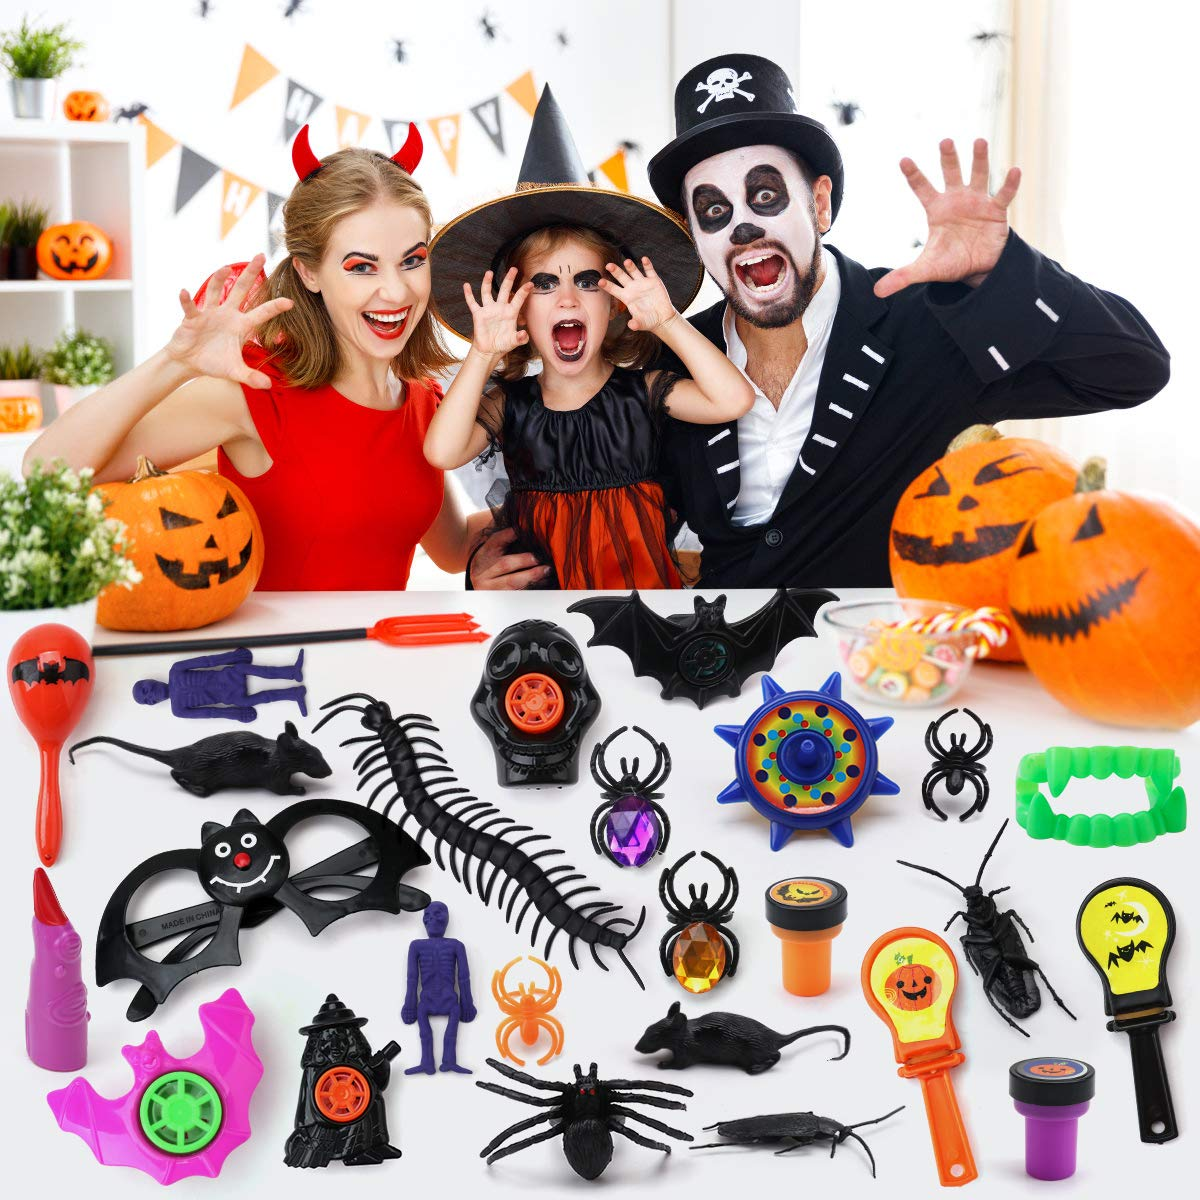 Aitbay 150PCS Halloween Party Favors Bulk for Kids Trick or Treat Favors Toy Assortment for Carnival Prizes Halloween Party and Classroom Rewards